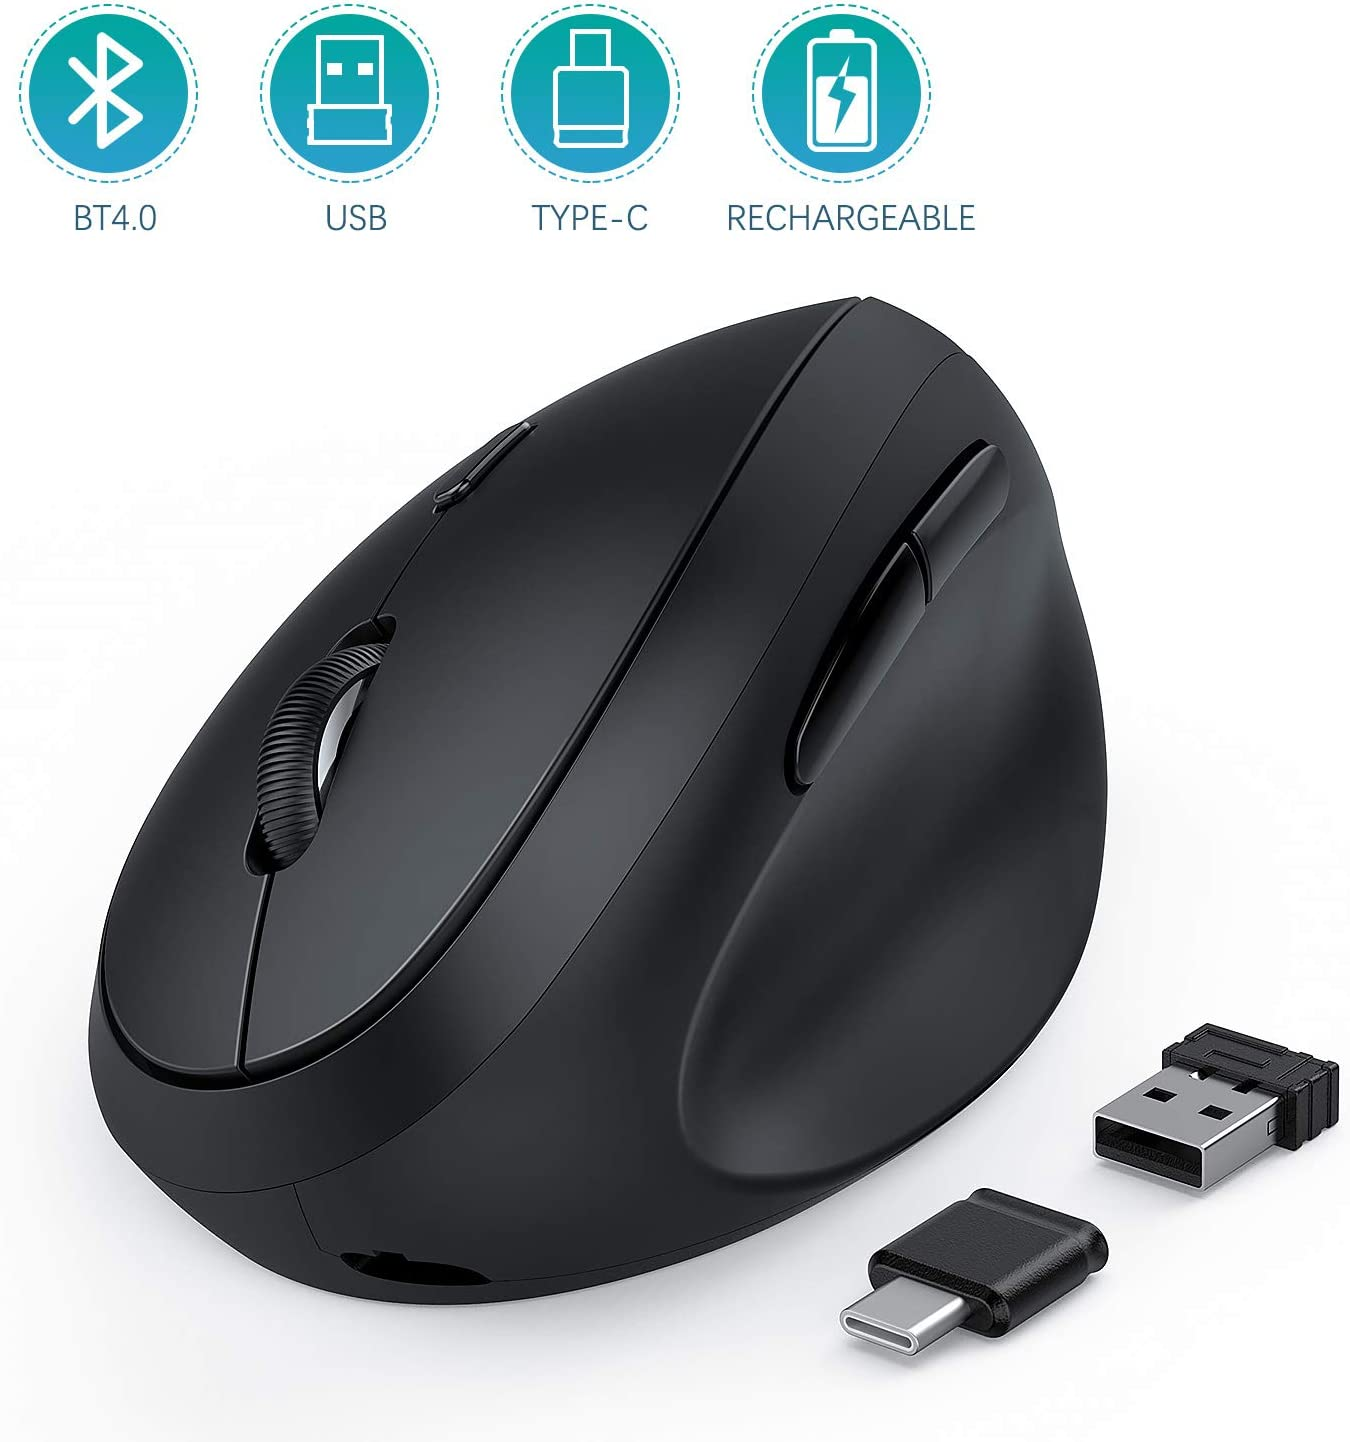 Vertical Wireless Mouse, Jelly Comb Ergonomic Mouse Reduces Wrist Strain, Easy Switch Between 3 Computers with Bluetooth, USB or Type C Connection, Rechargeable - MV09D